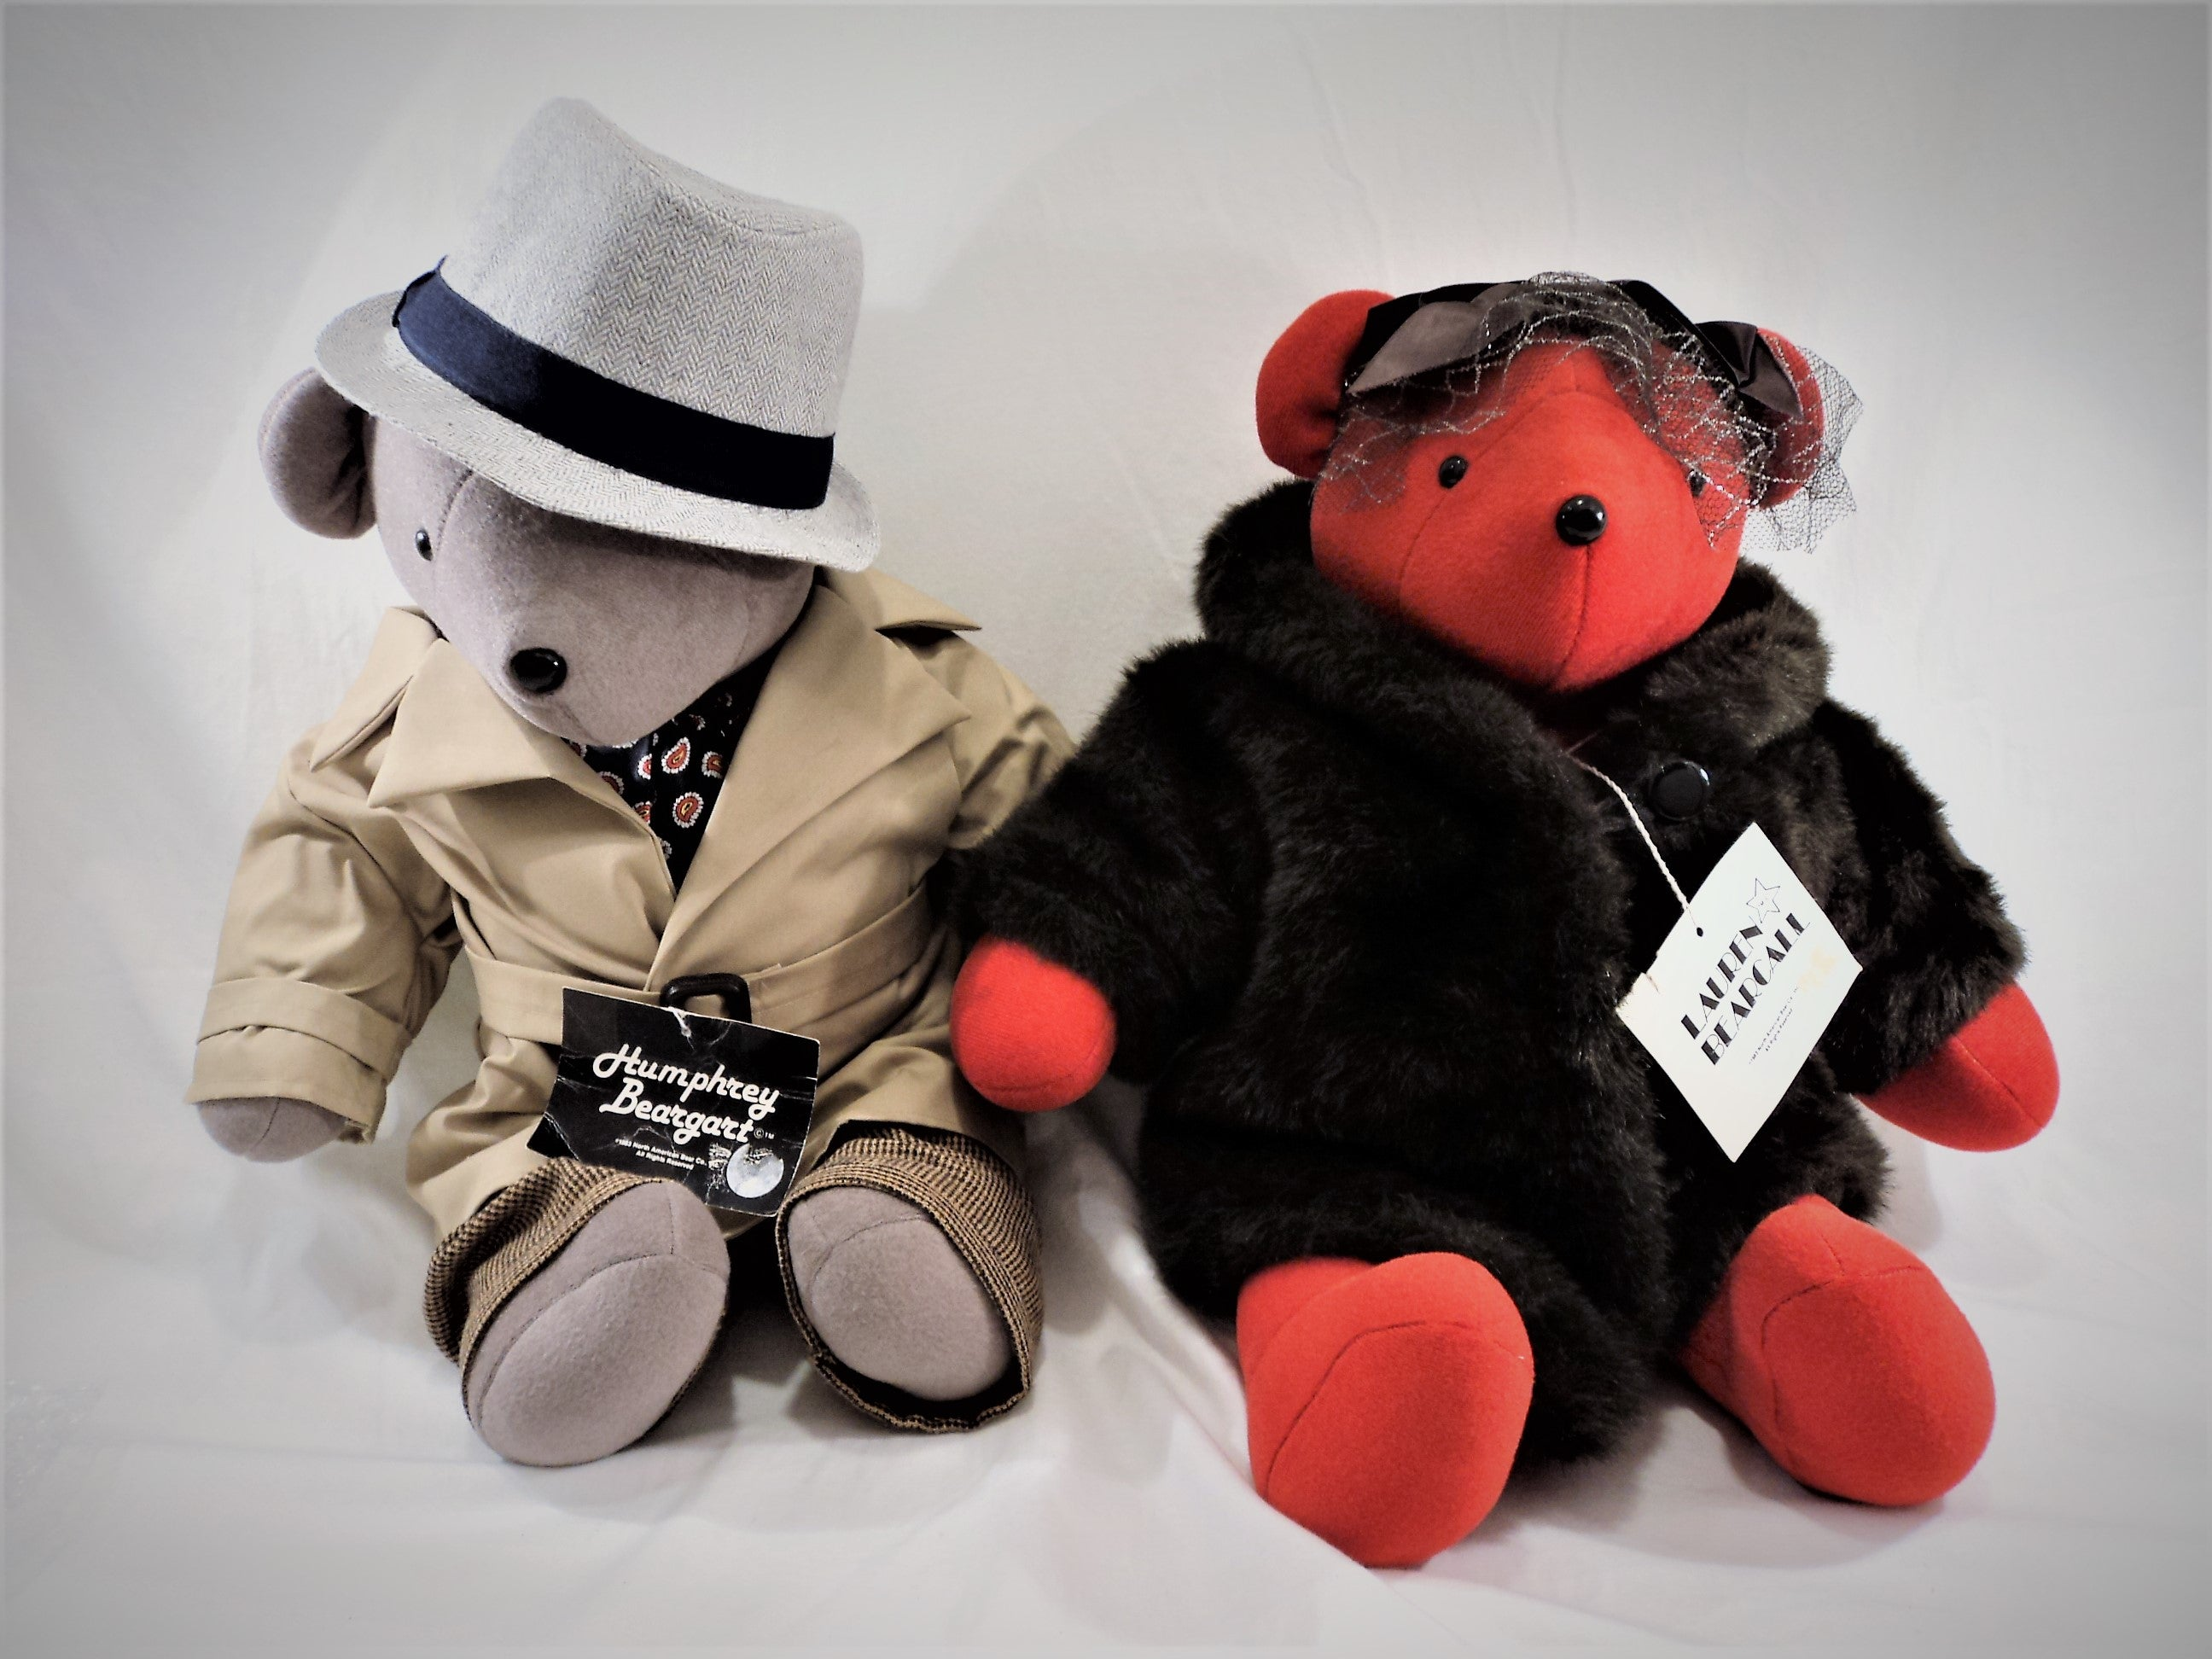 Vintage Humphrey Beargart and Lauren Bearcall Teddy Bear